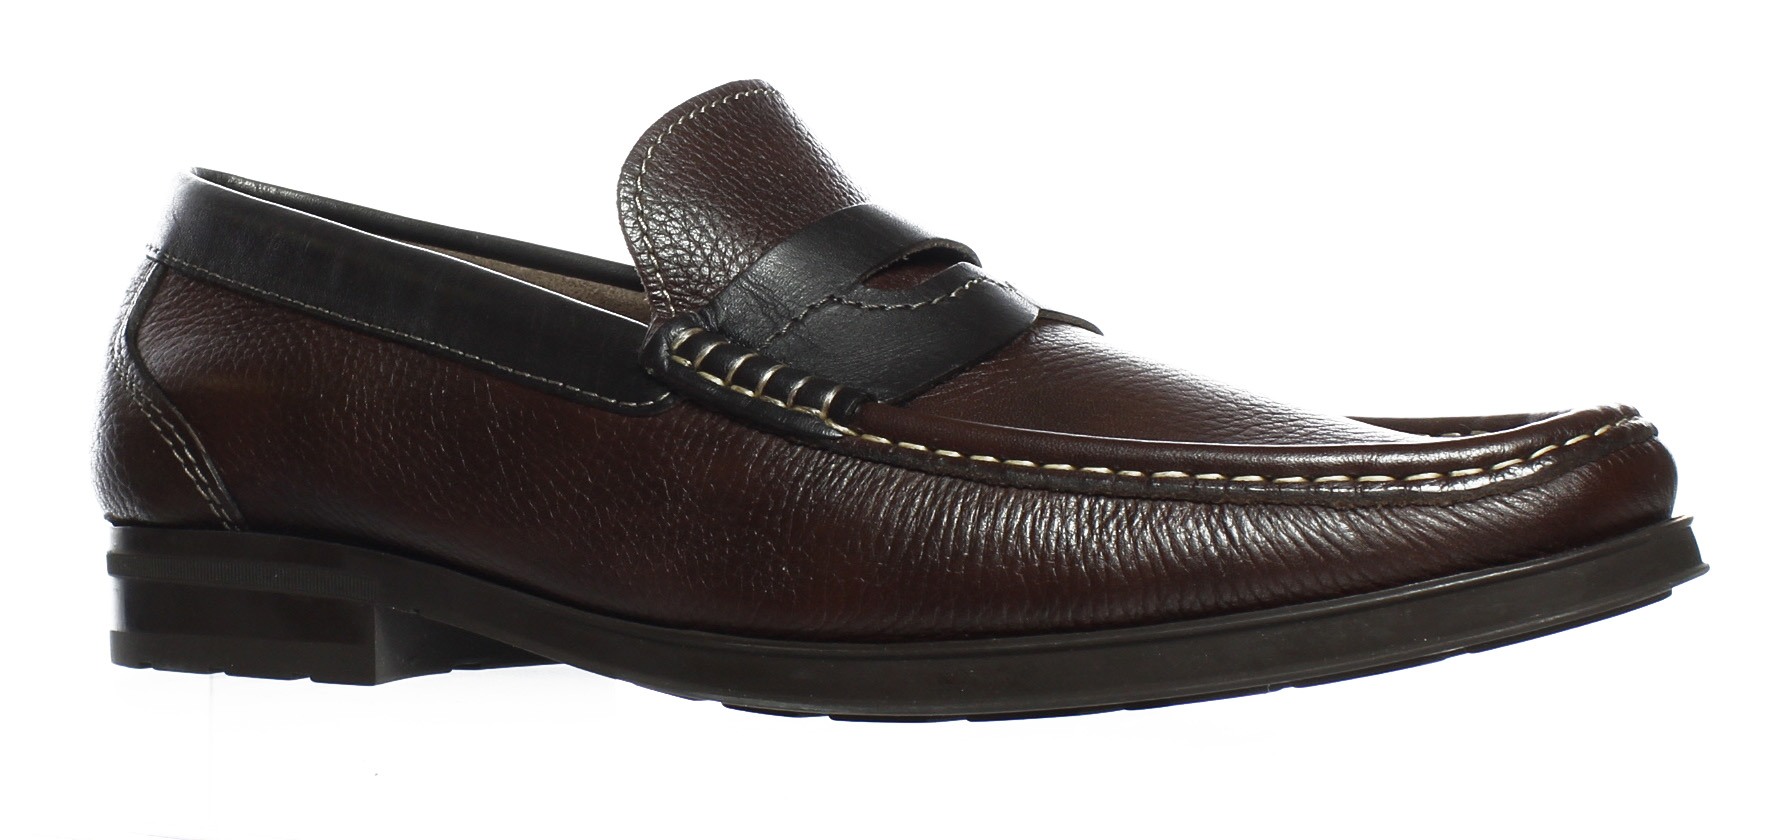 3ee4cbbb797 Florsheim Mens Westbrooke Penny Brown Milled Loafers Size 10.5 (3E) (25324)